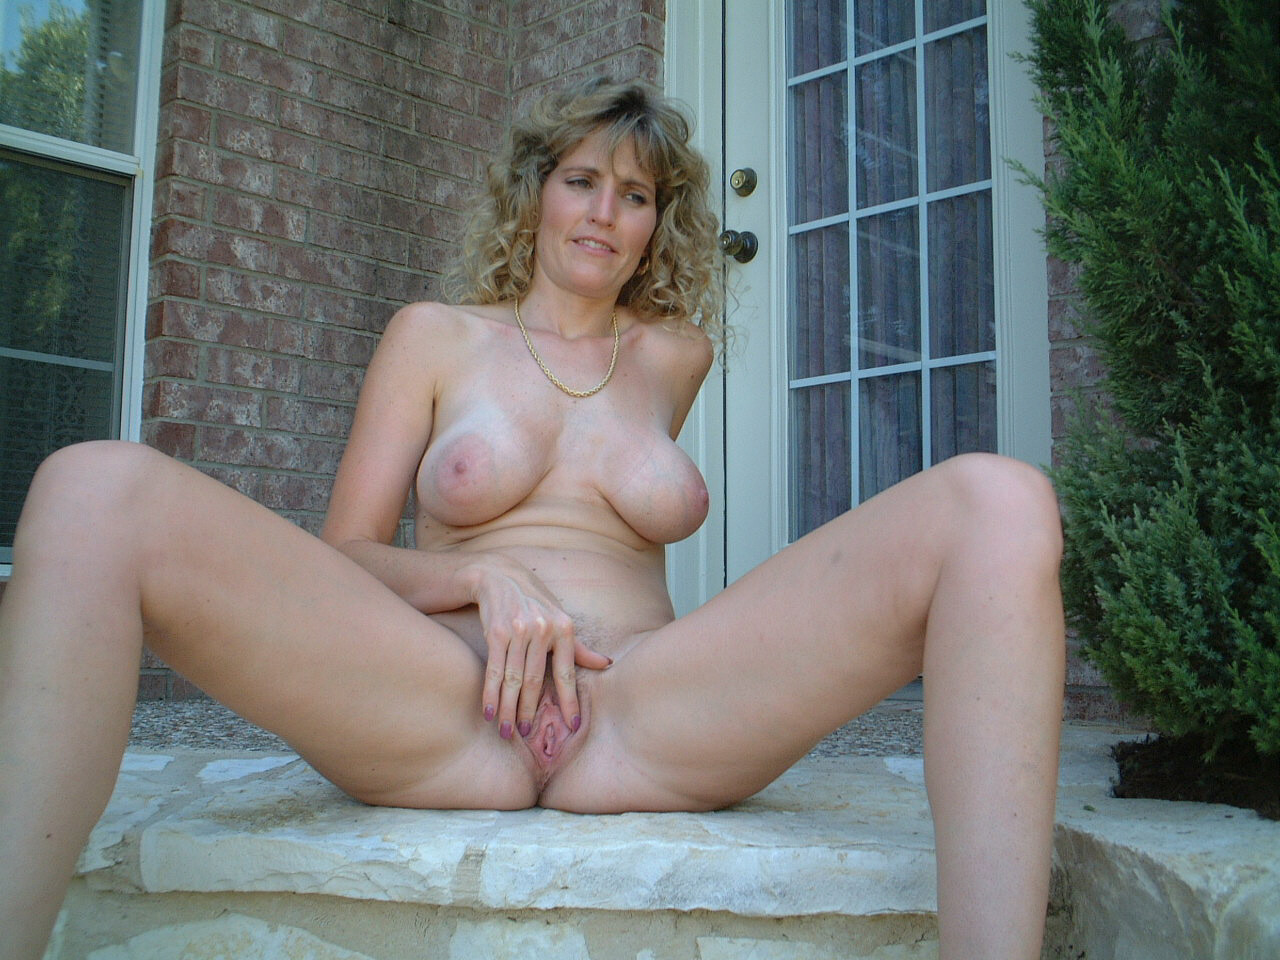 Thanks Sexy amateur mature wife nude for that